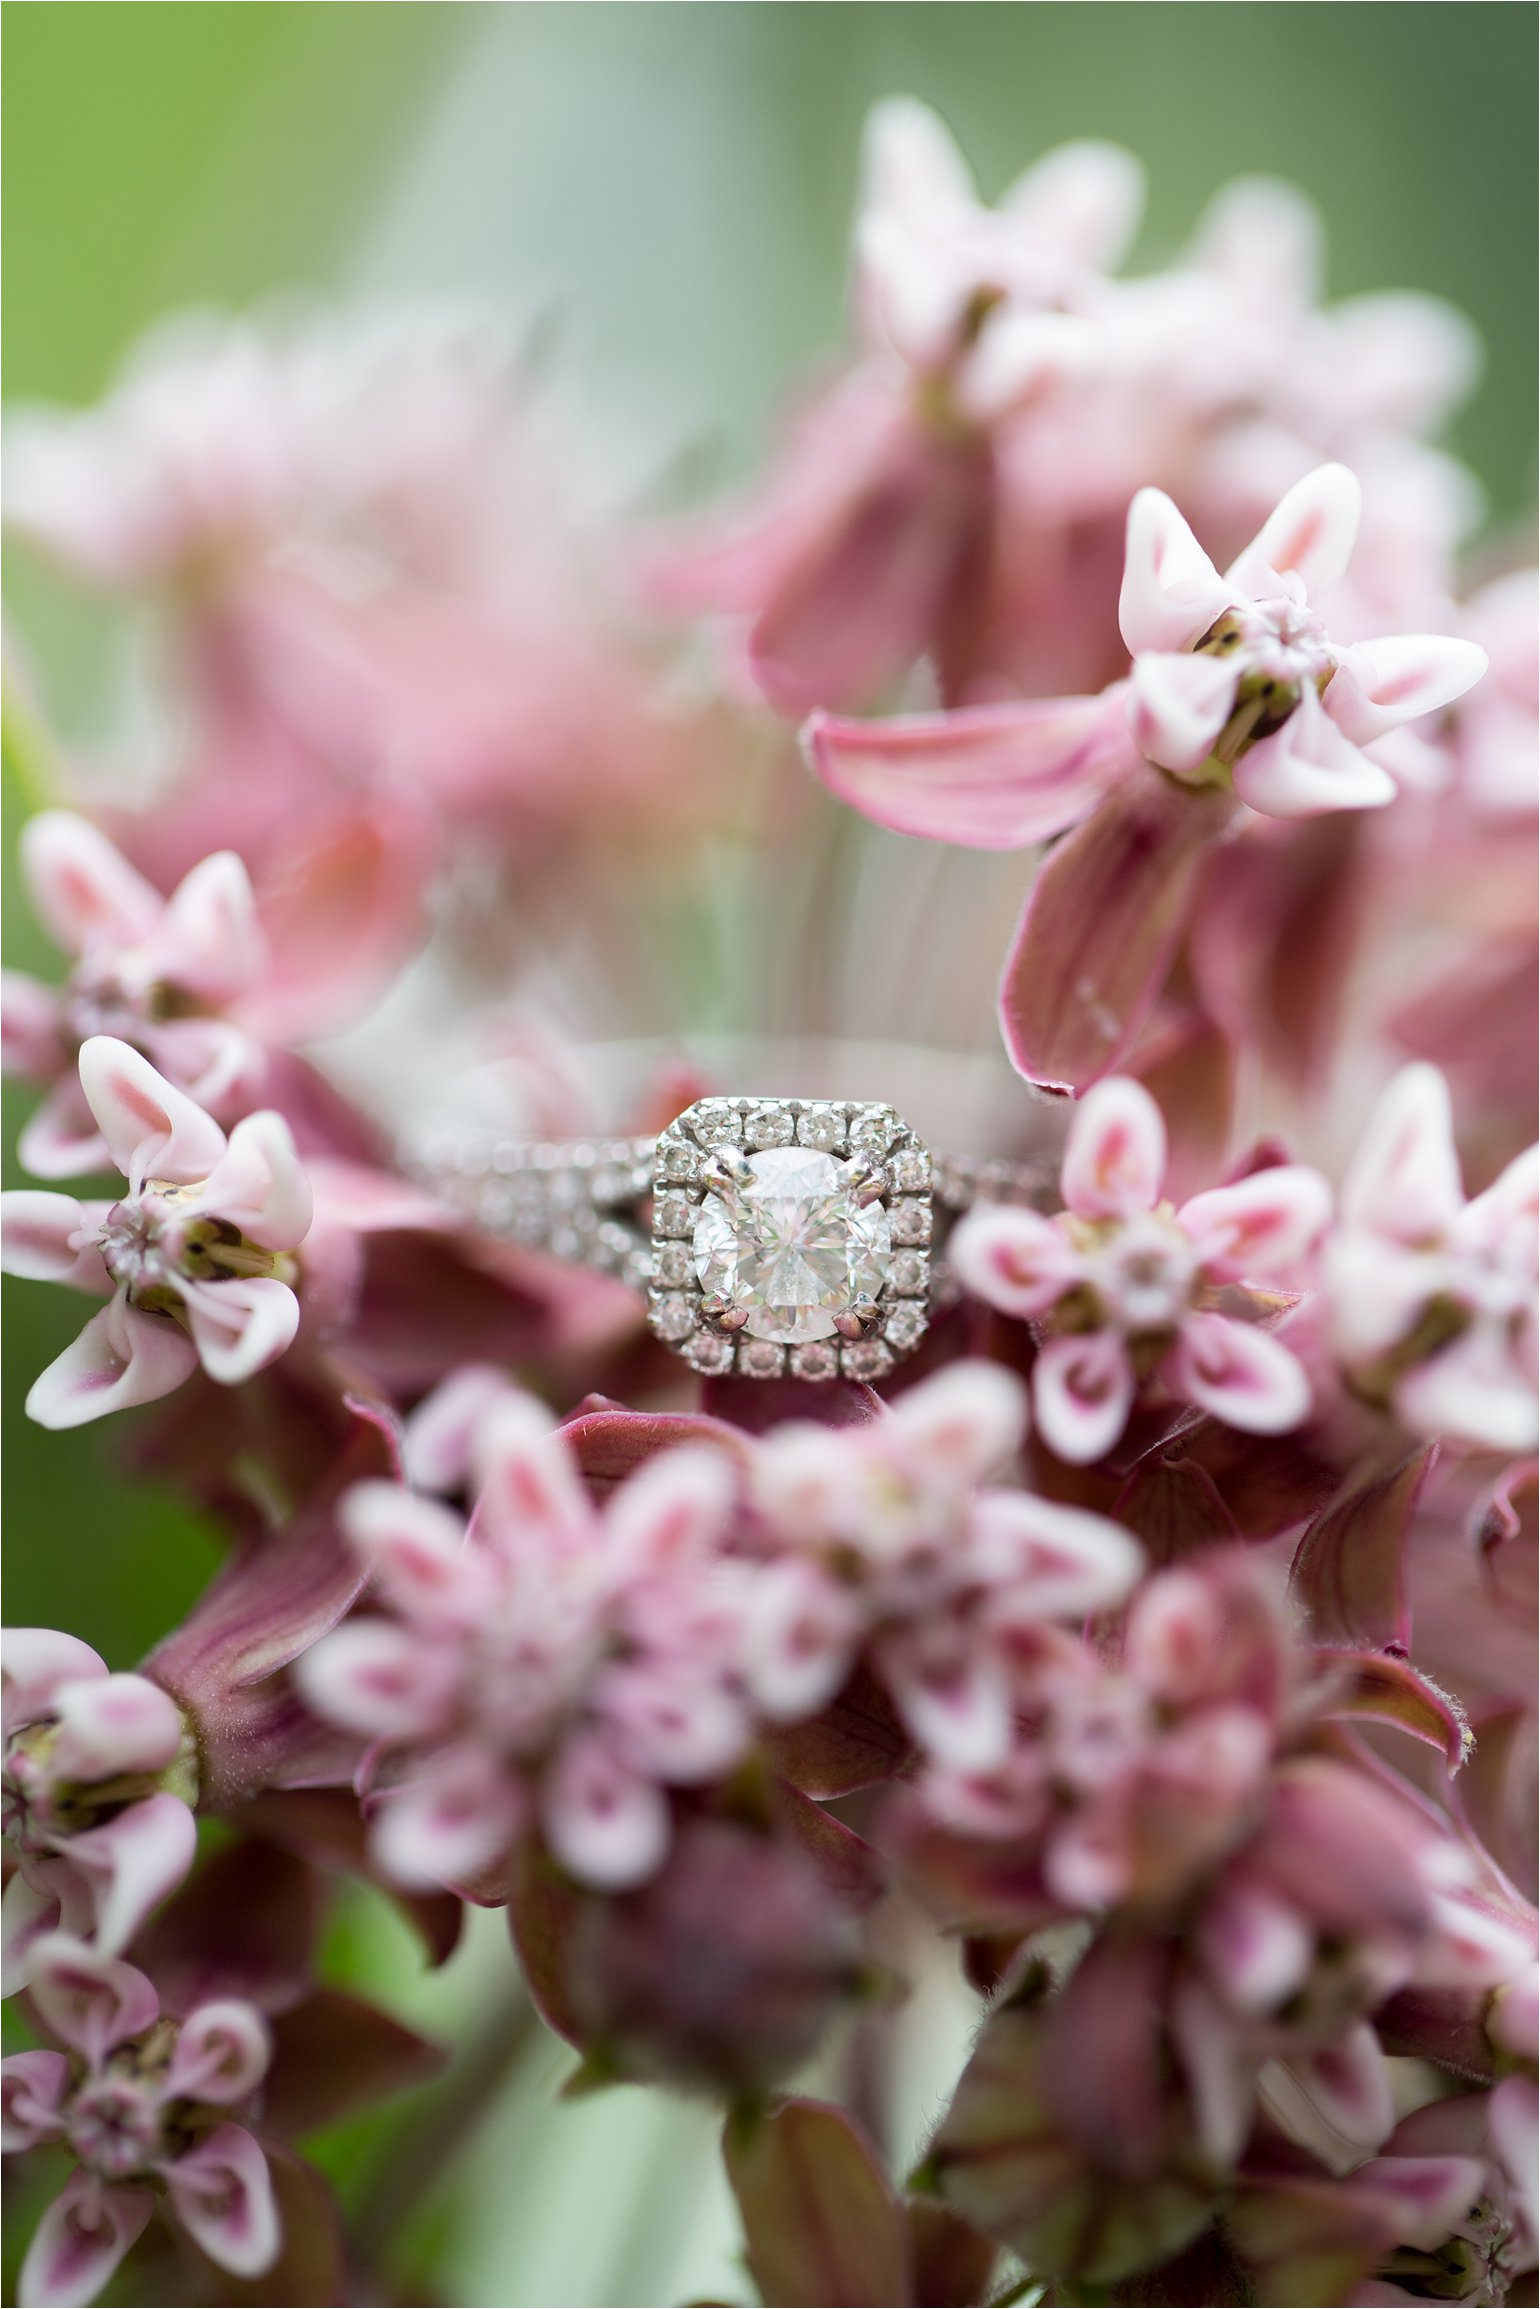 Engagement Ring on Flowers © 2015 Maundy Mitchell_0016.jpg